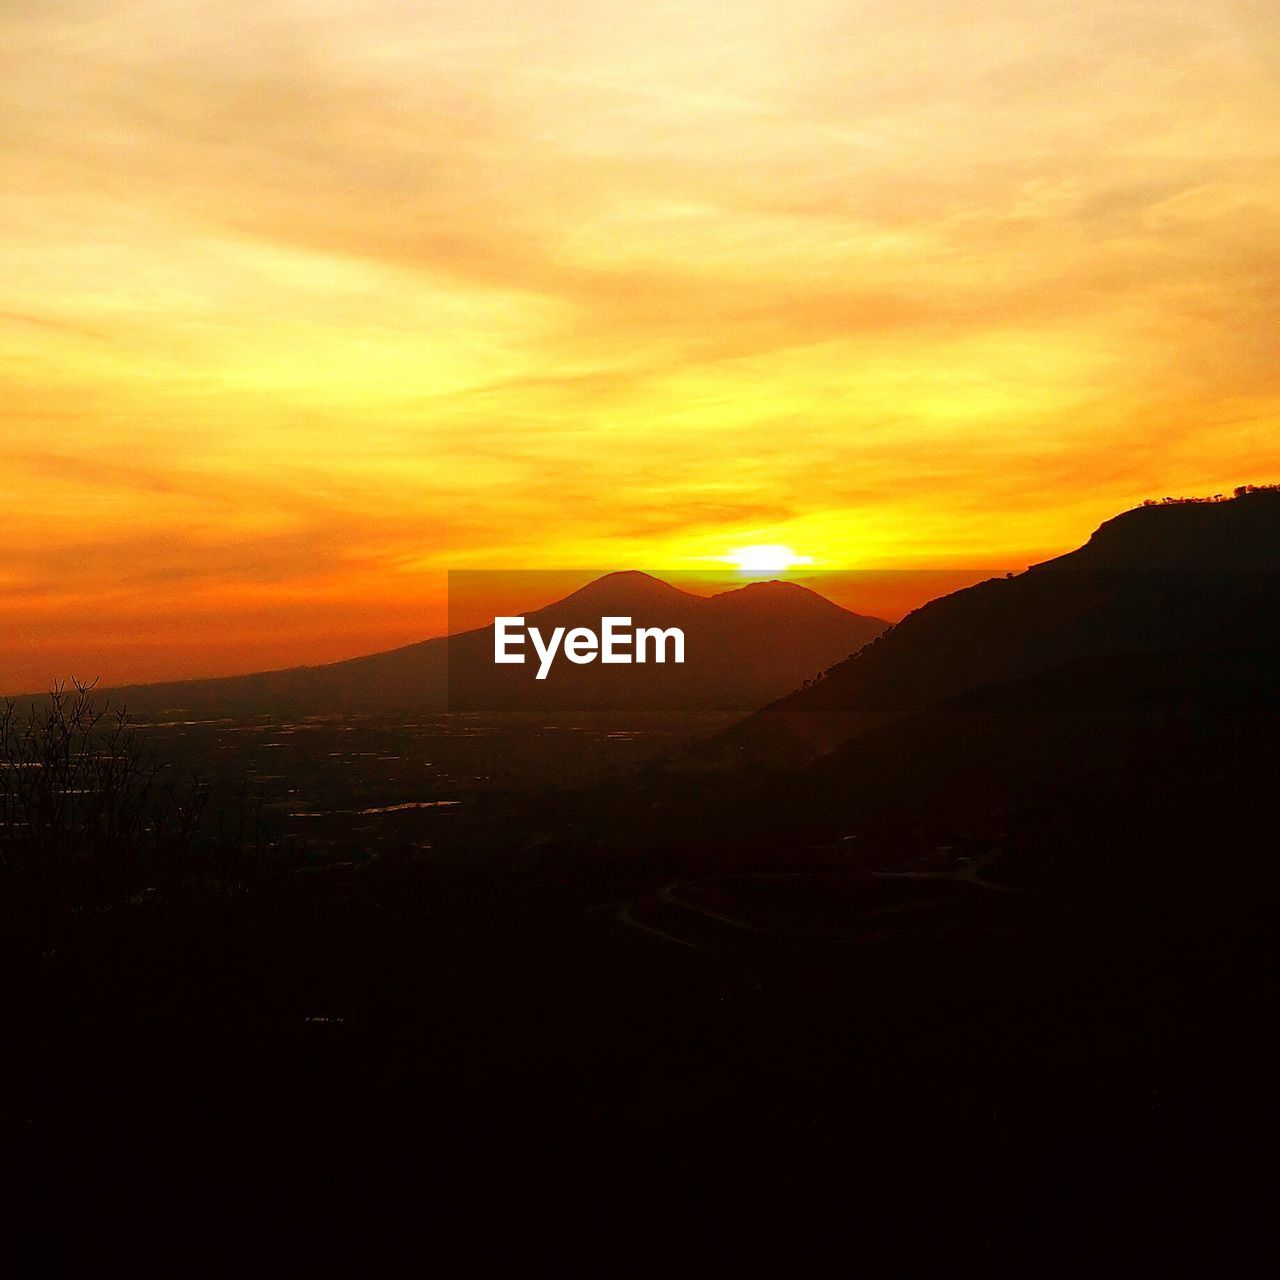 sunset, mountain, orange color, silhouette, nature, beauty in nature, scenics, tranquil scene, tranquility, no people, landscape, sky, outdoors, mountain range